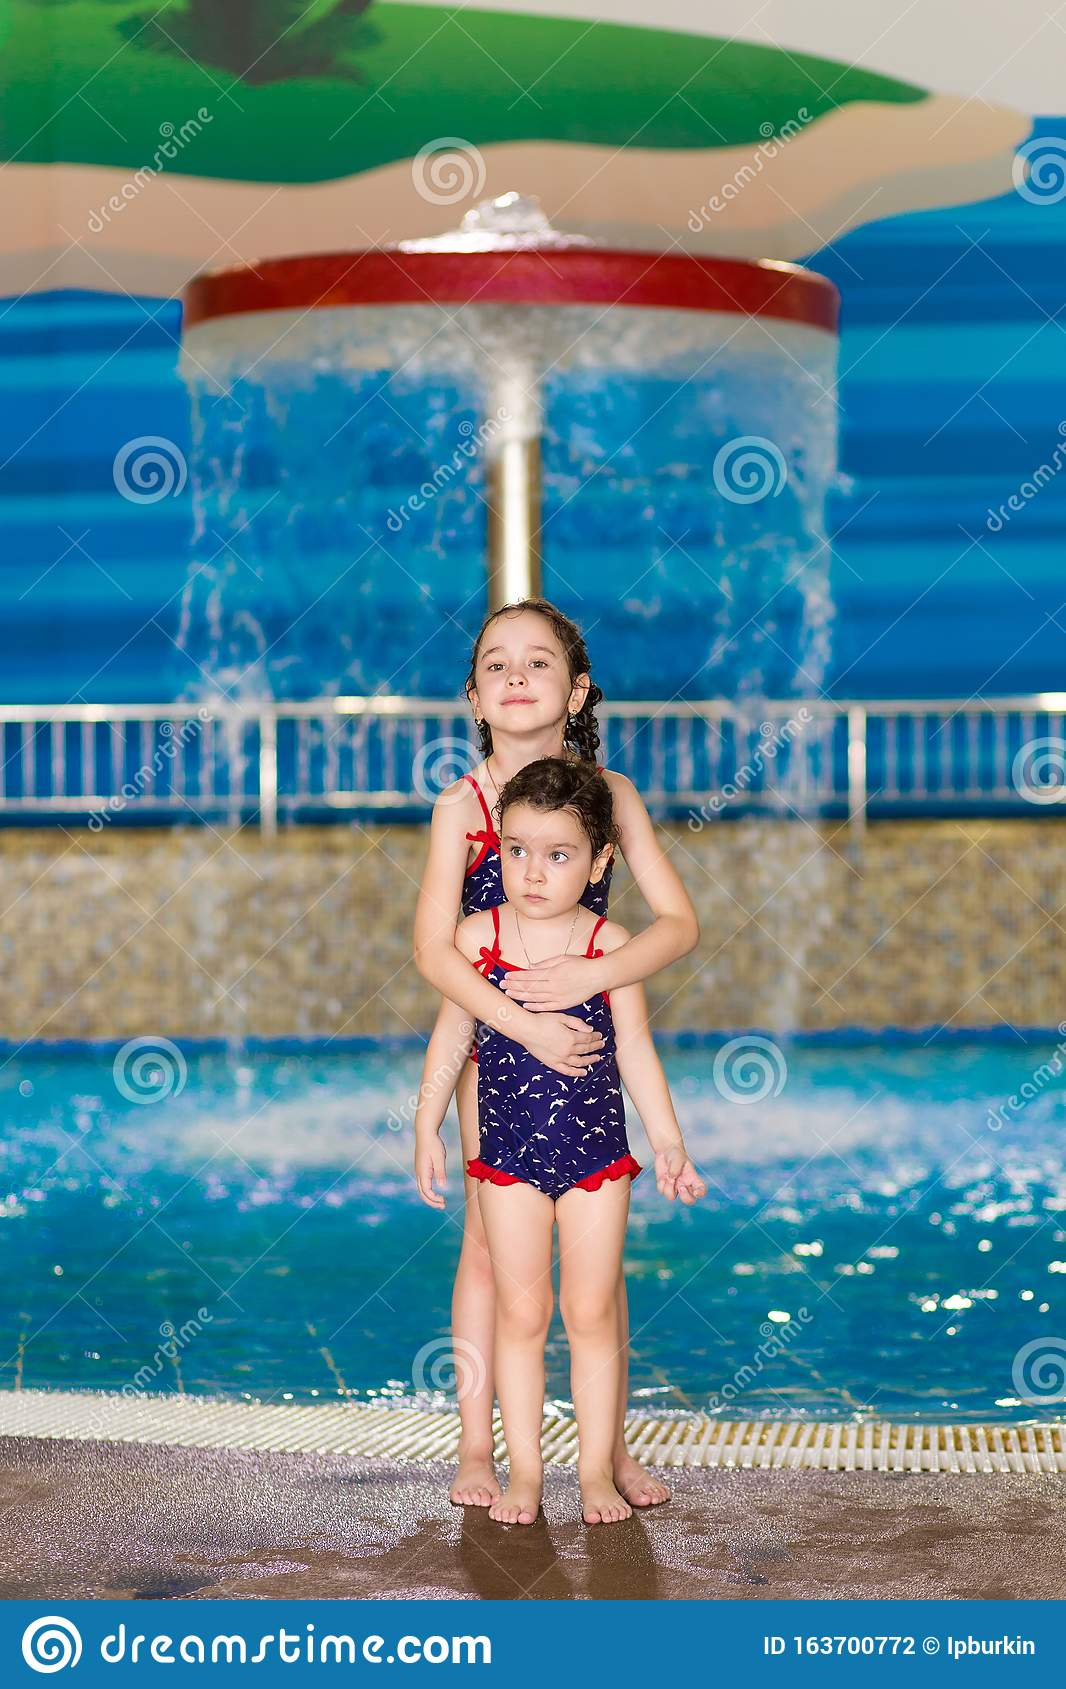 Happy Little Girls In Identical Swimsuits Posing Near The Children S Pool In The Water Park Child Learns To Swim Stock Photo Image Of People Flume 163700772